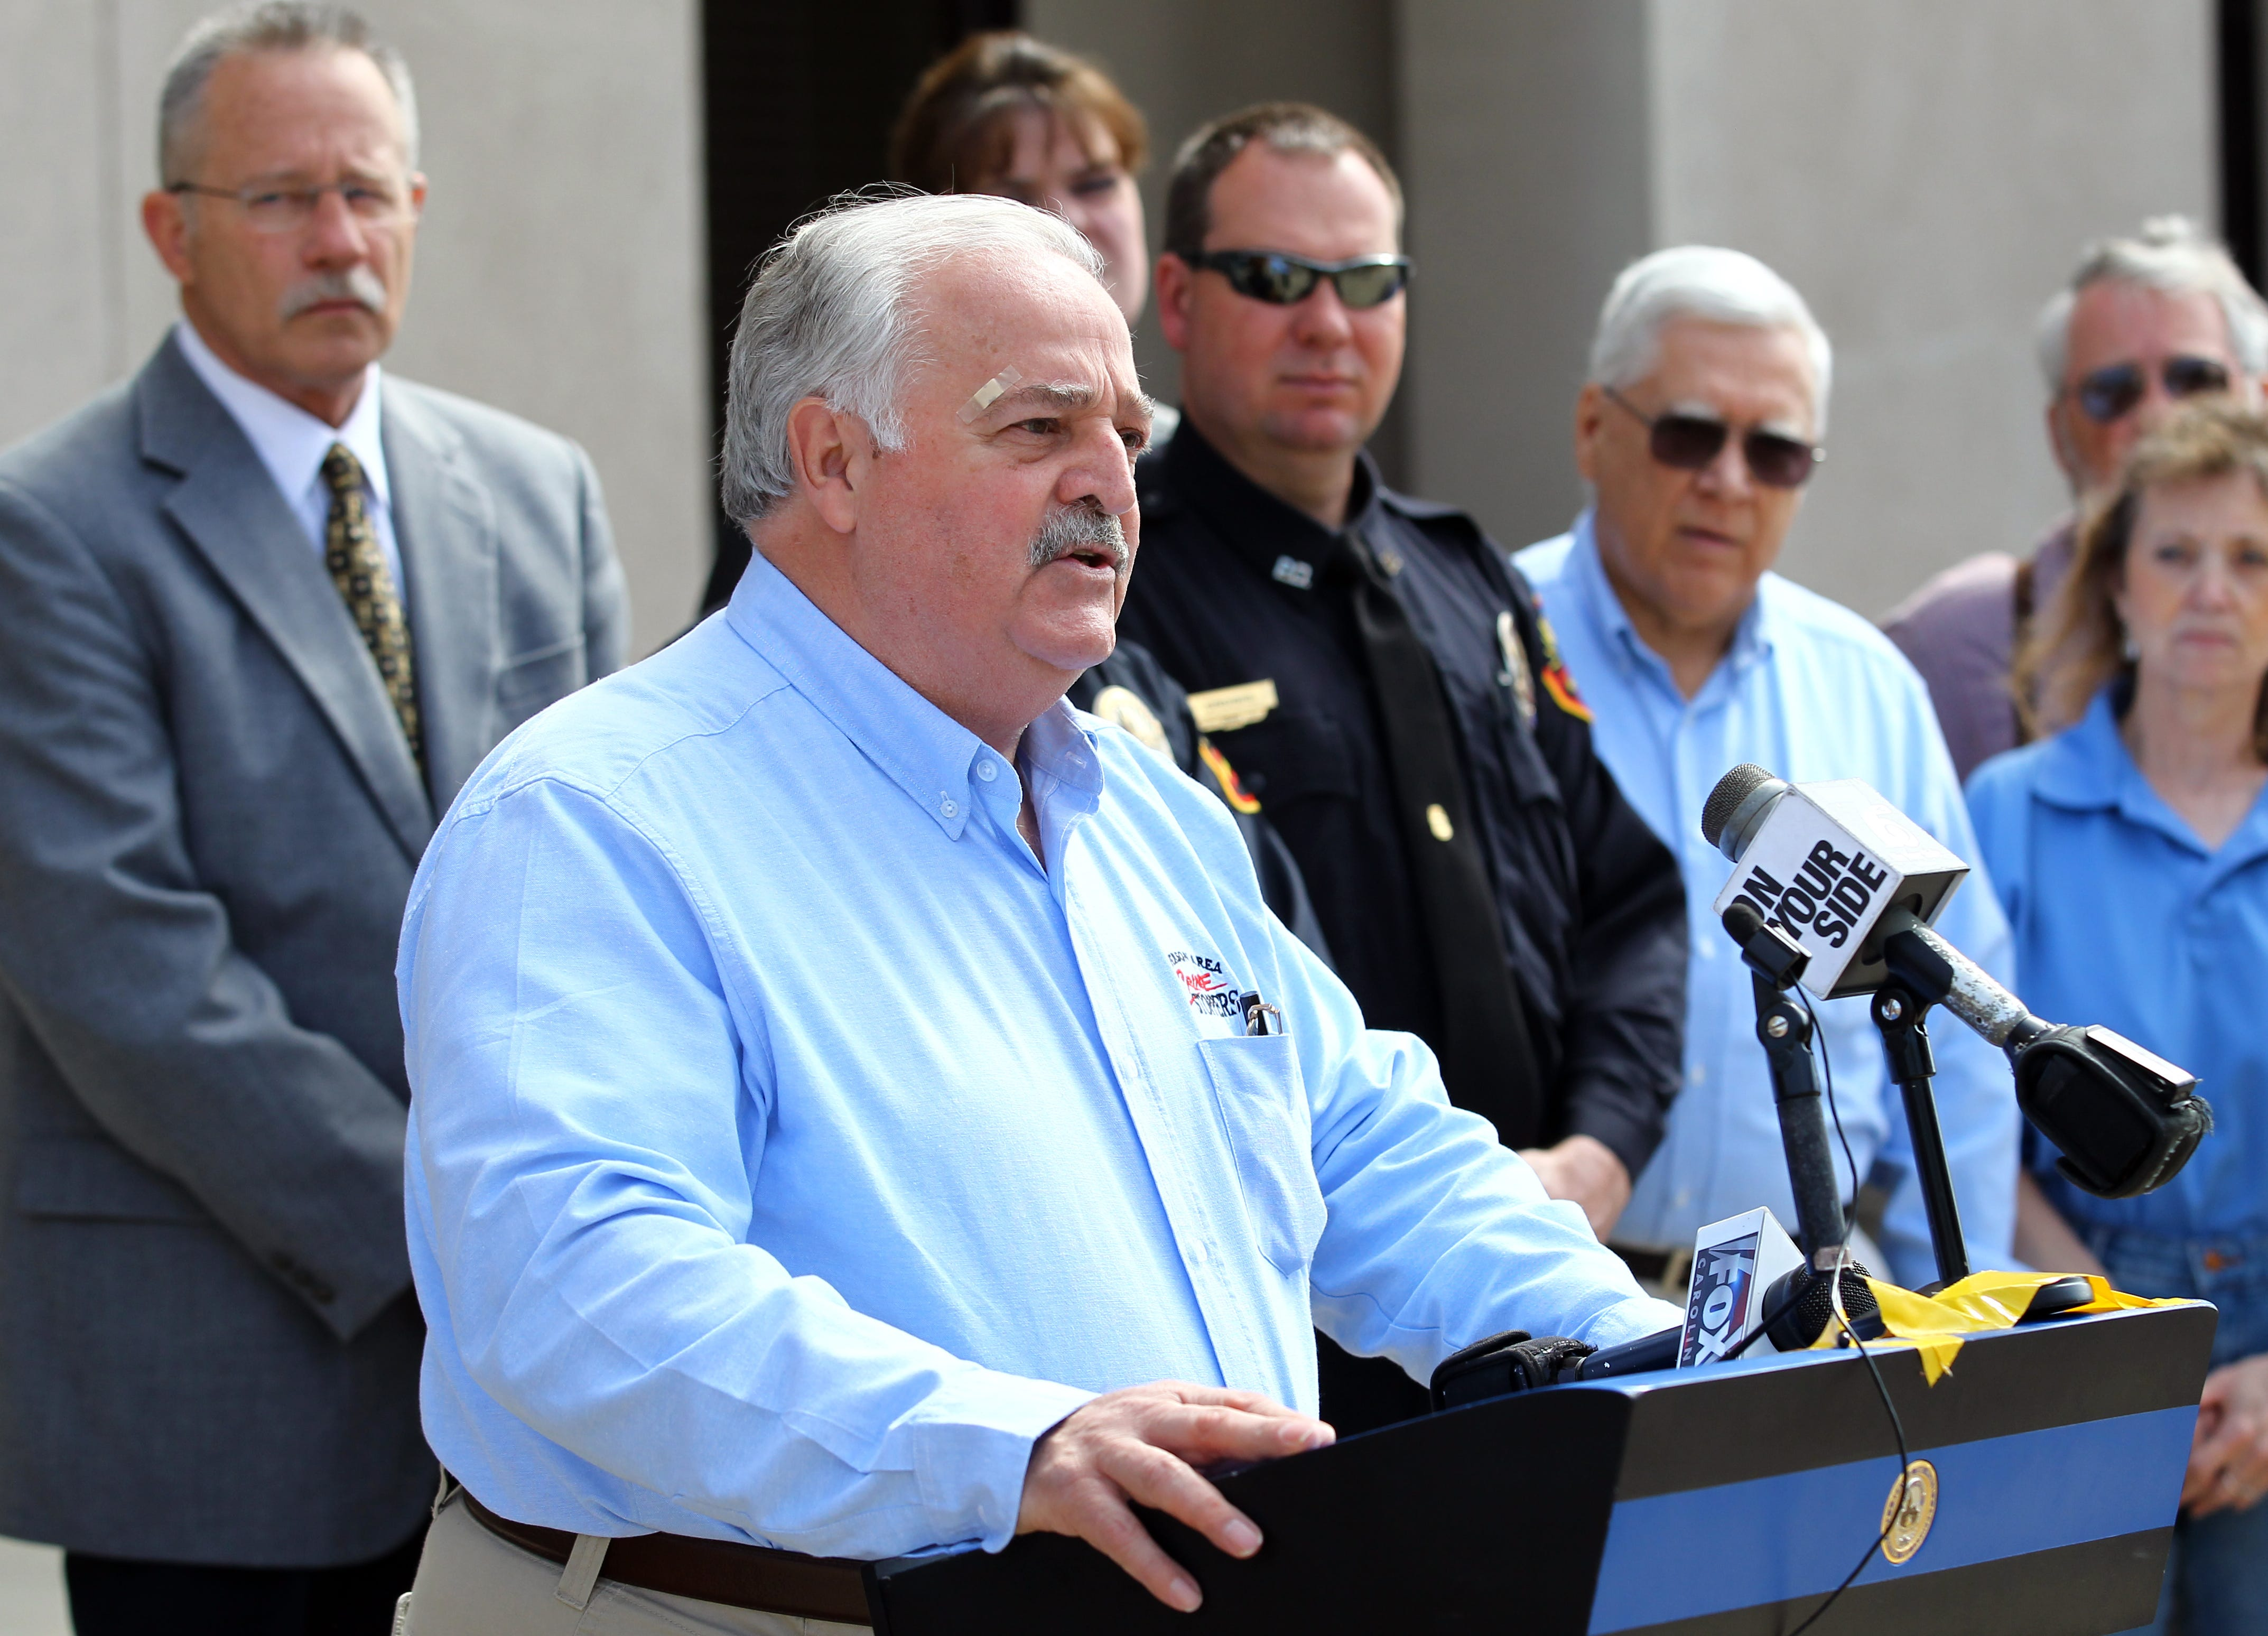 Kenny Caldwell, an Anderson Area Crime Stoppers founder, has